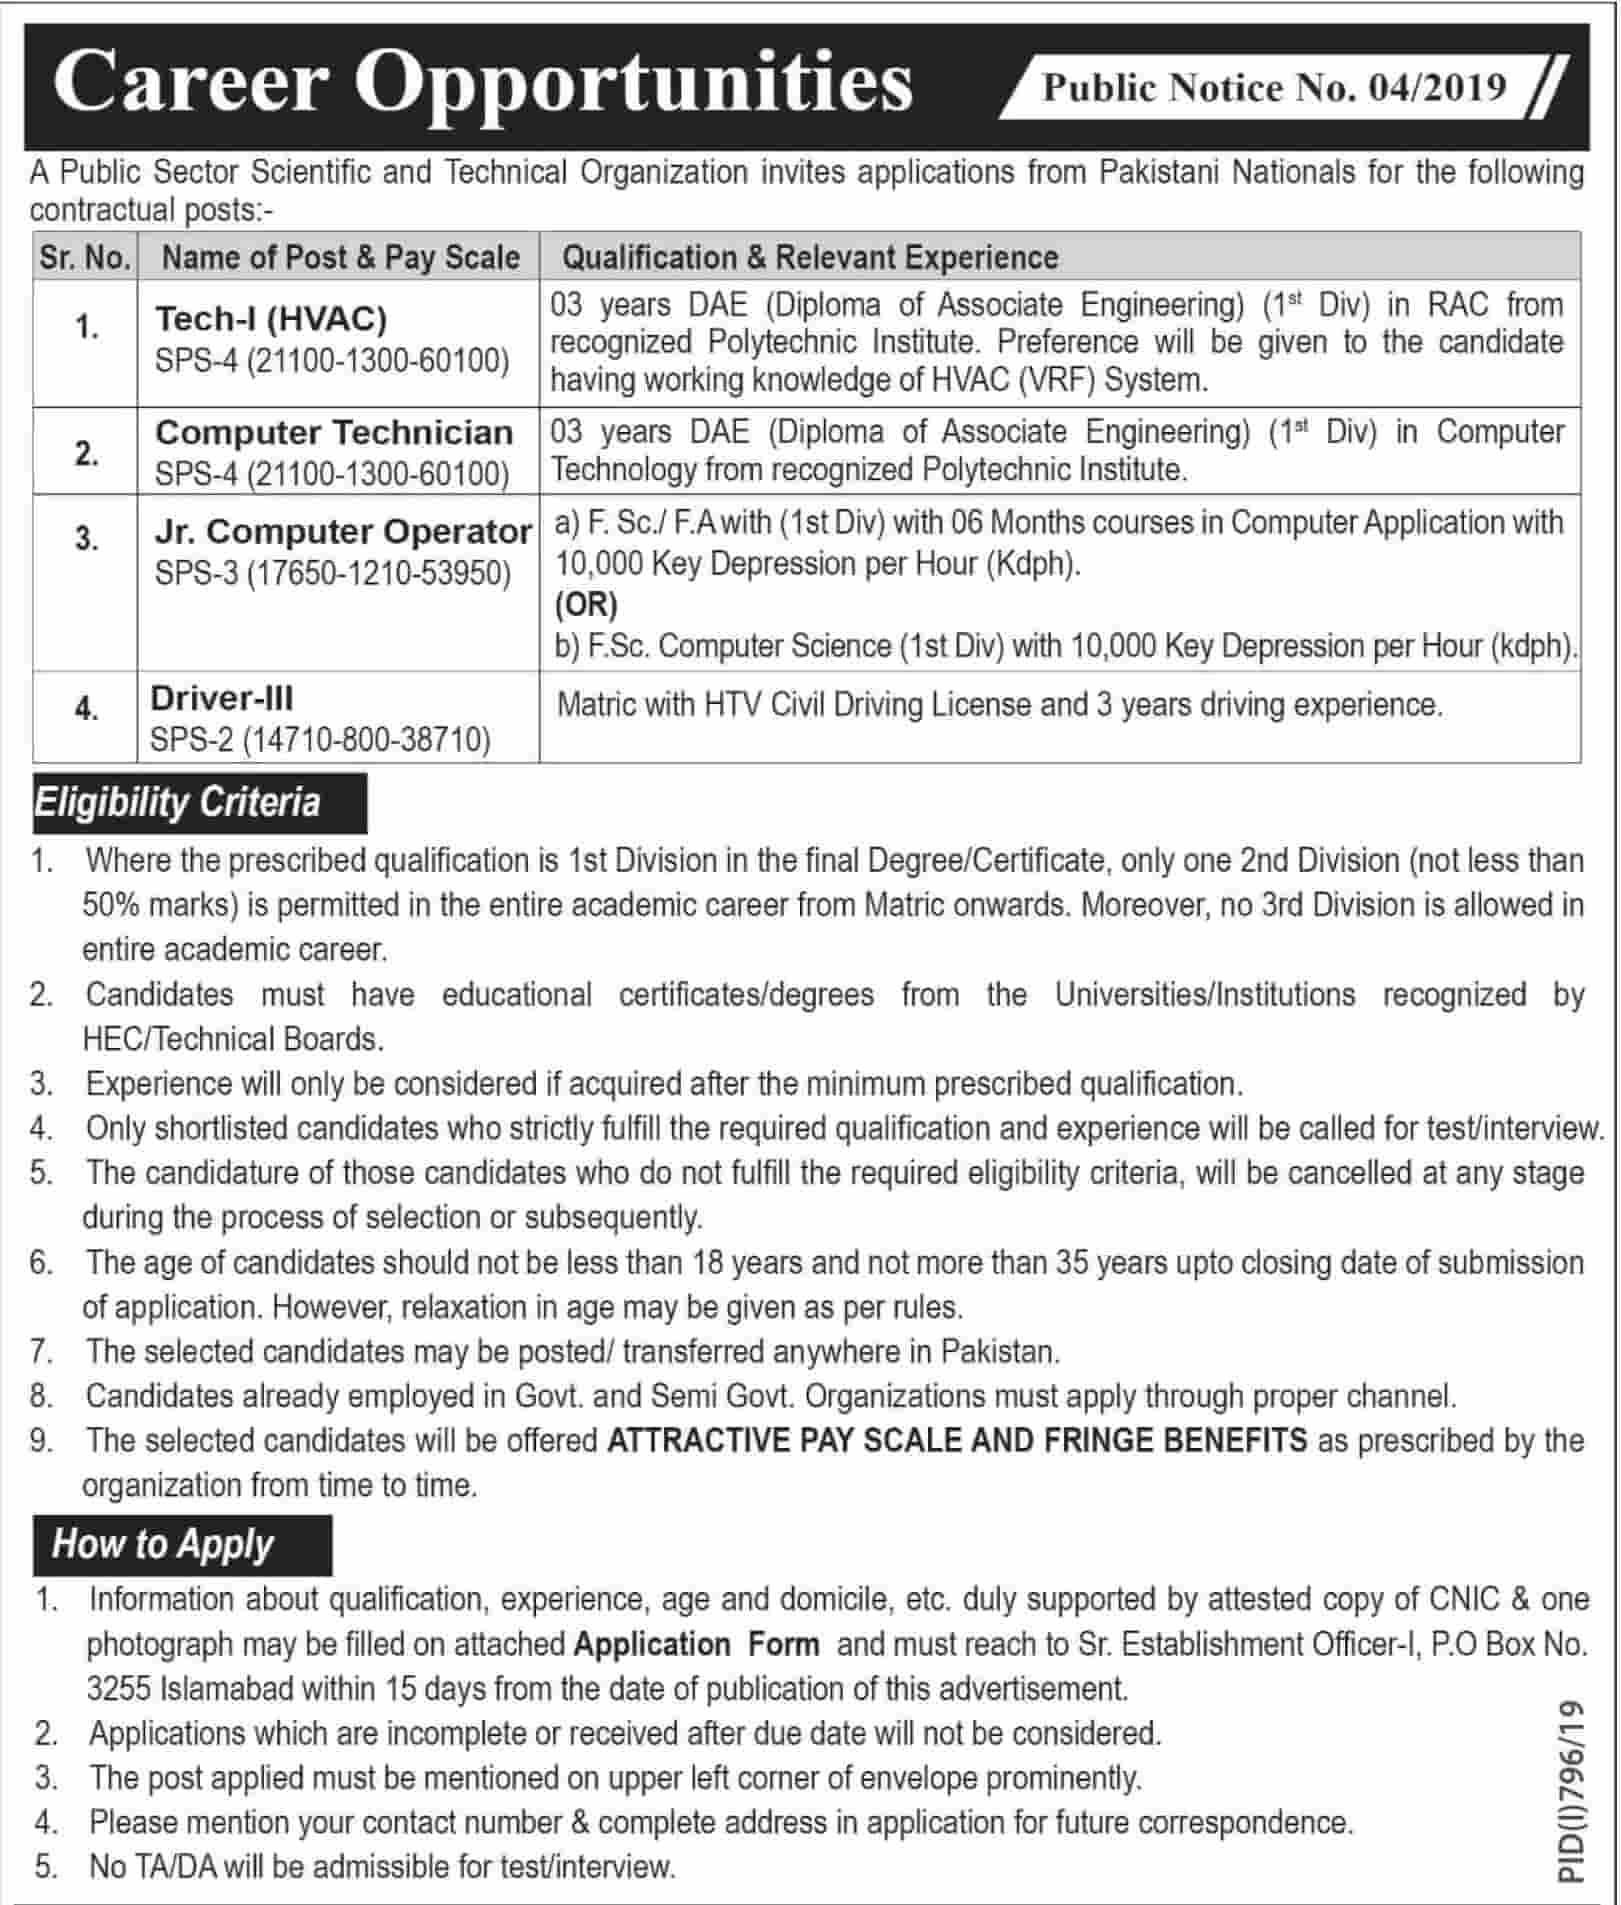 PO Box No 3255 Islamabad Public Sector Organization PAEC Jobs 2019